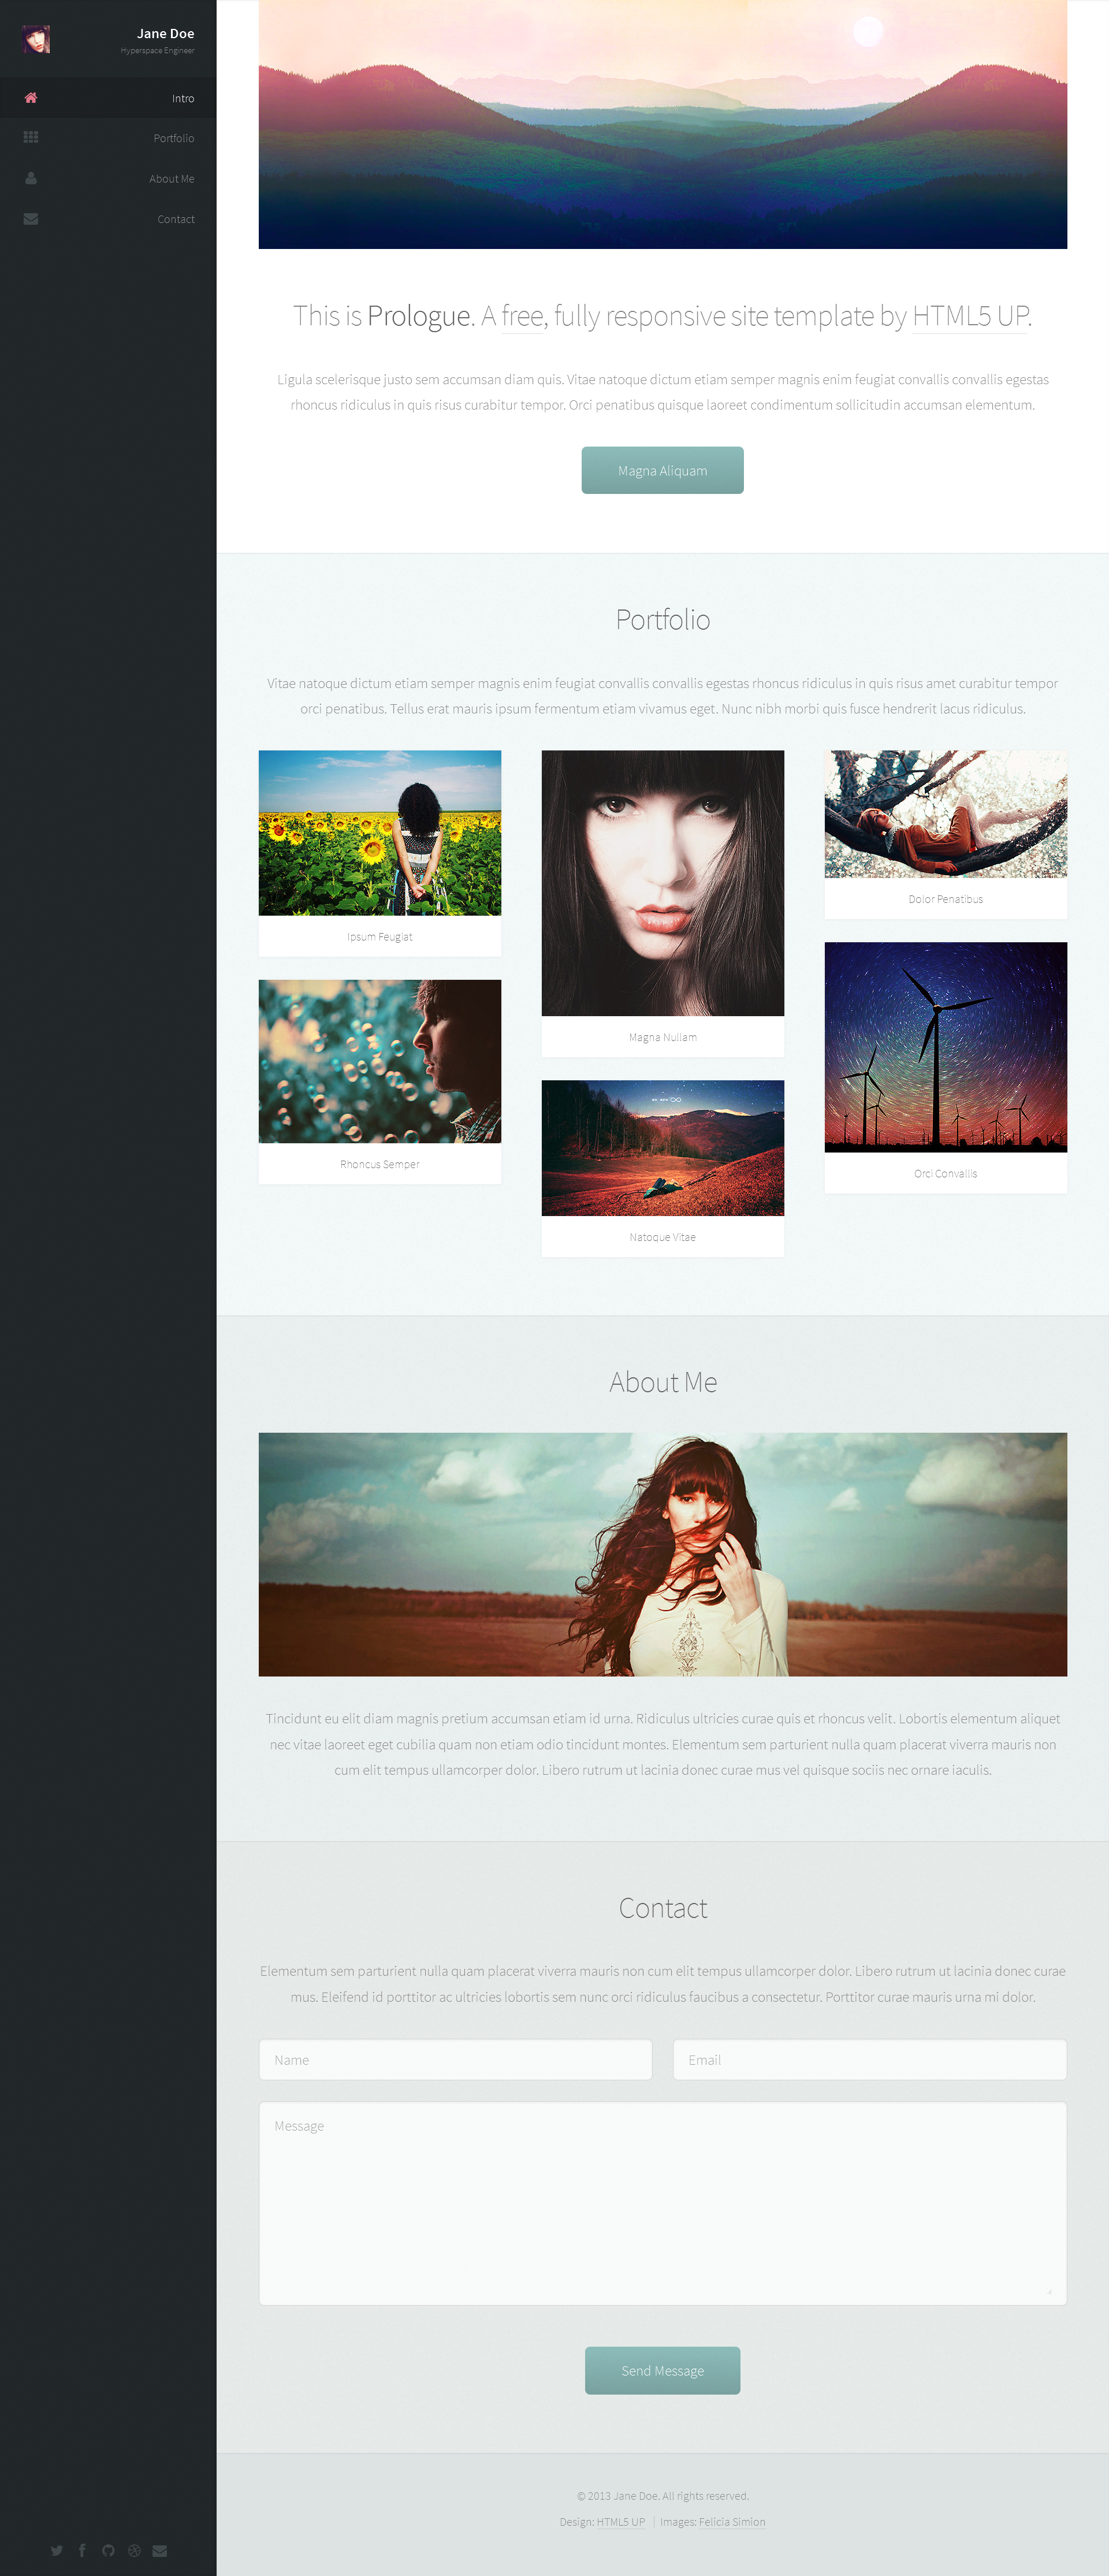 Prologue (responsive site template freebie) by nodethirtythree